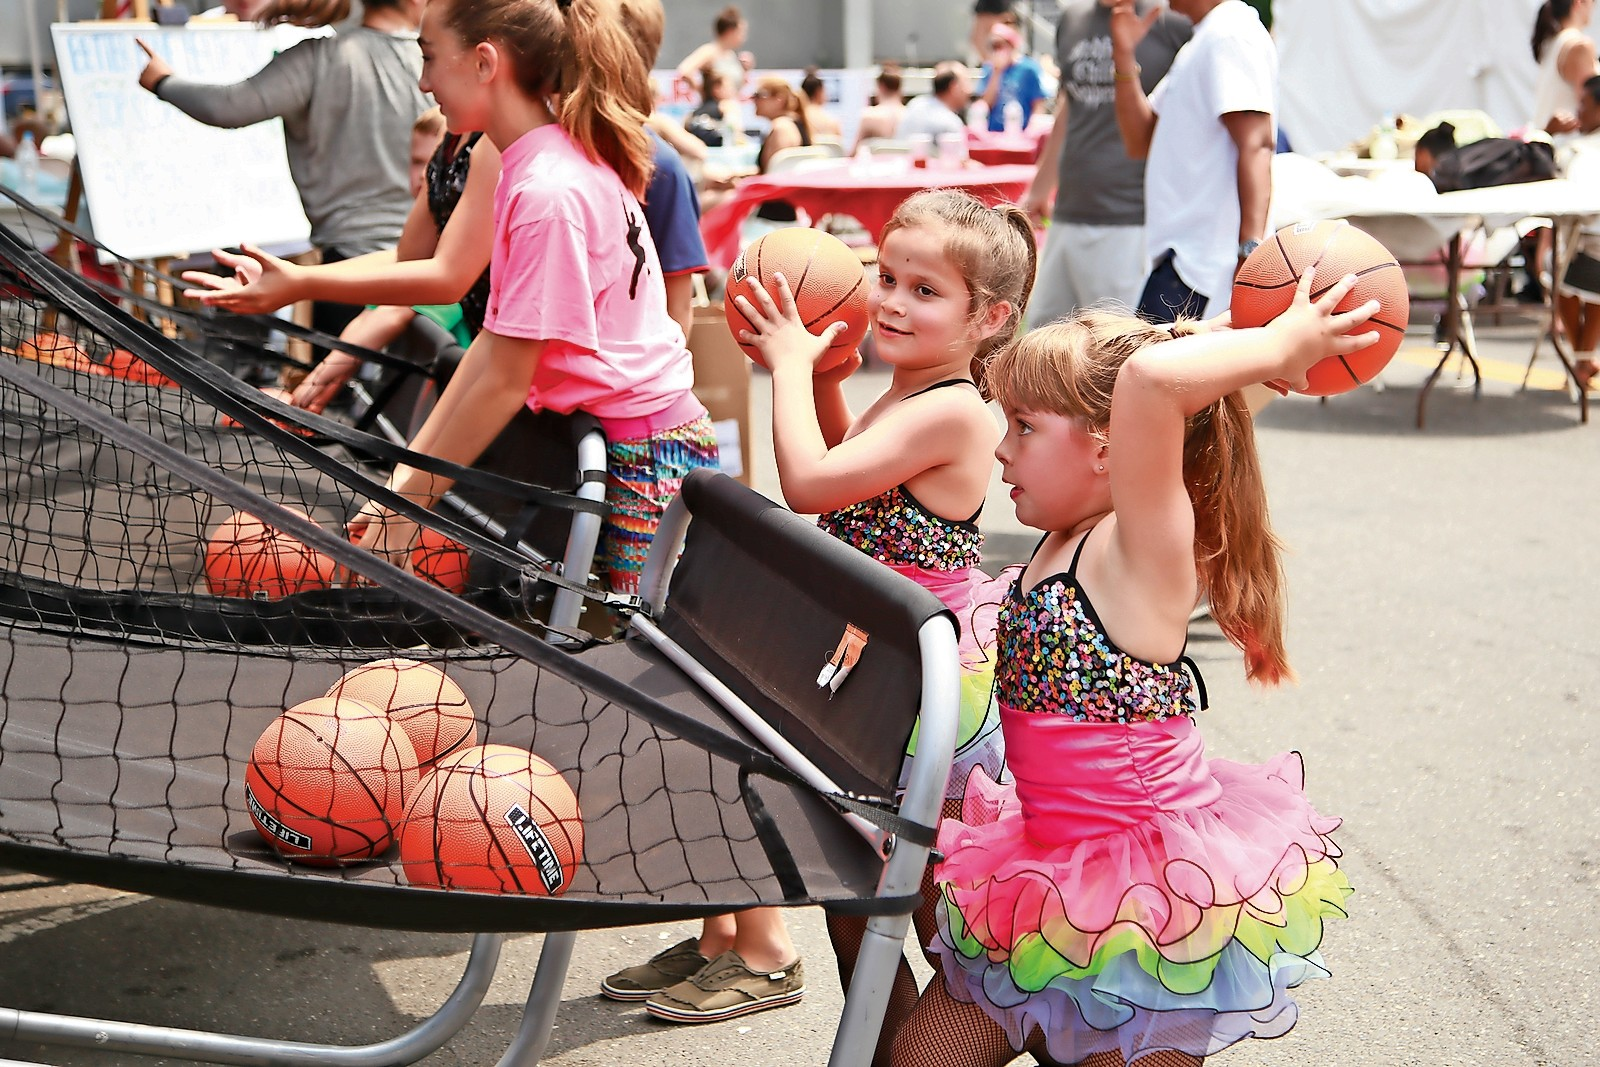 Kelly Walsh, left, and Caroline Lynch, dancers from Miss Colleen's Elite Dancentre, took a break from their performances to enjoy the Kids' Zone at the EAT.SHOP.ROCK street fair on Saturday. The fair was the most successful to date, with hundreds of people coming to Rockville Centre.